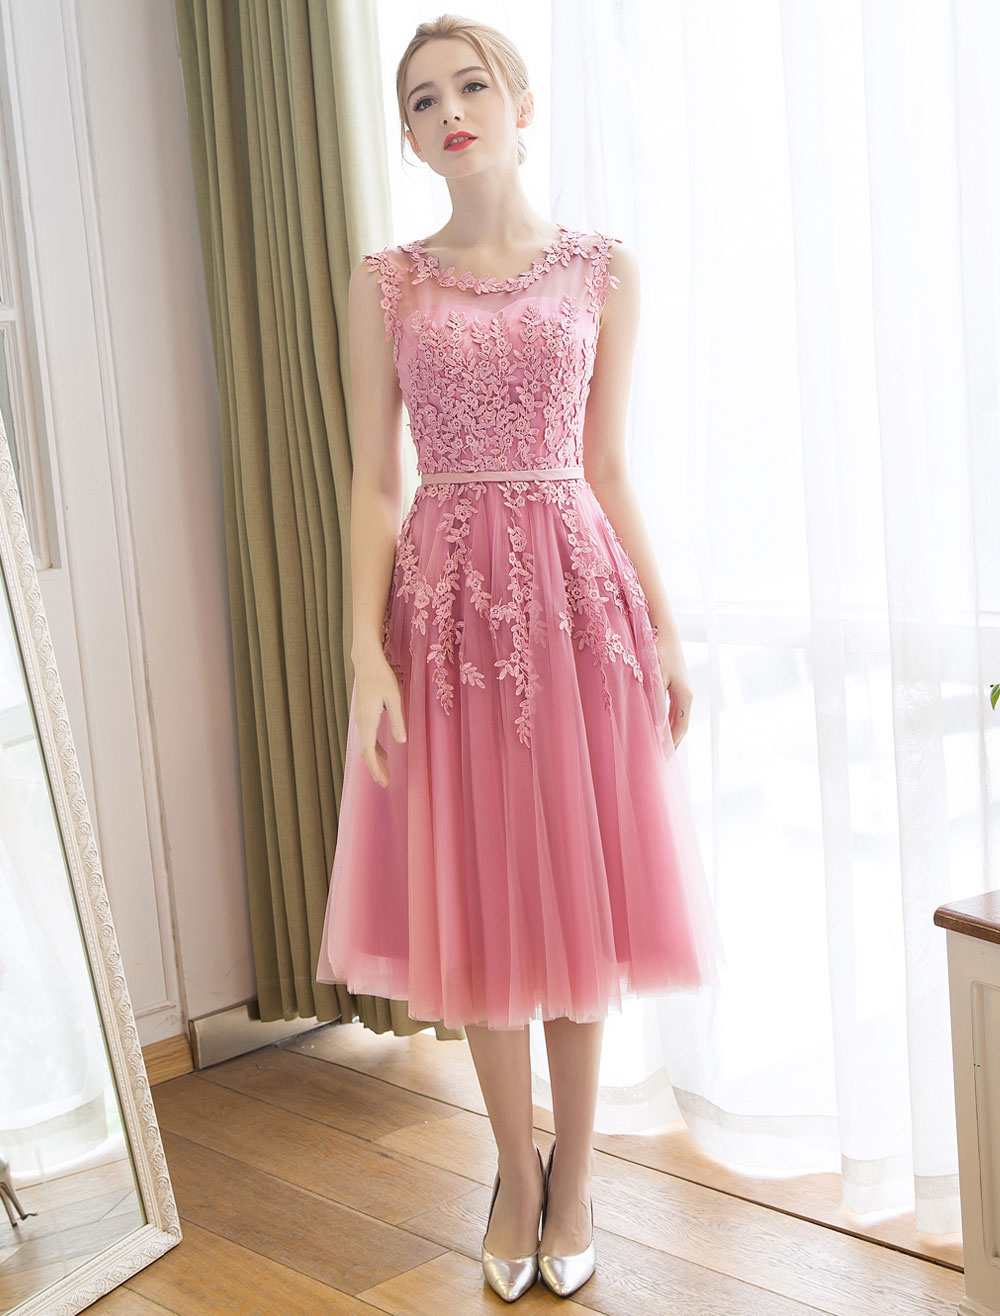 Buy Homecoming Dresses Cameo Pink Short Prom Dress Lace Applique Tulle Tea Length Party Dress for $83.59 in Milanoo store